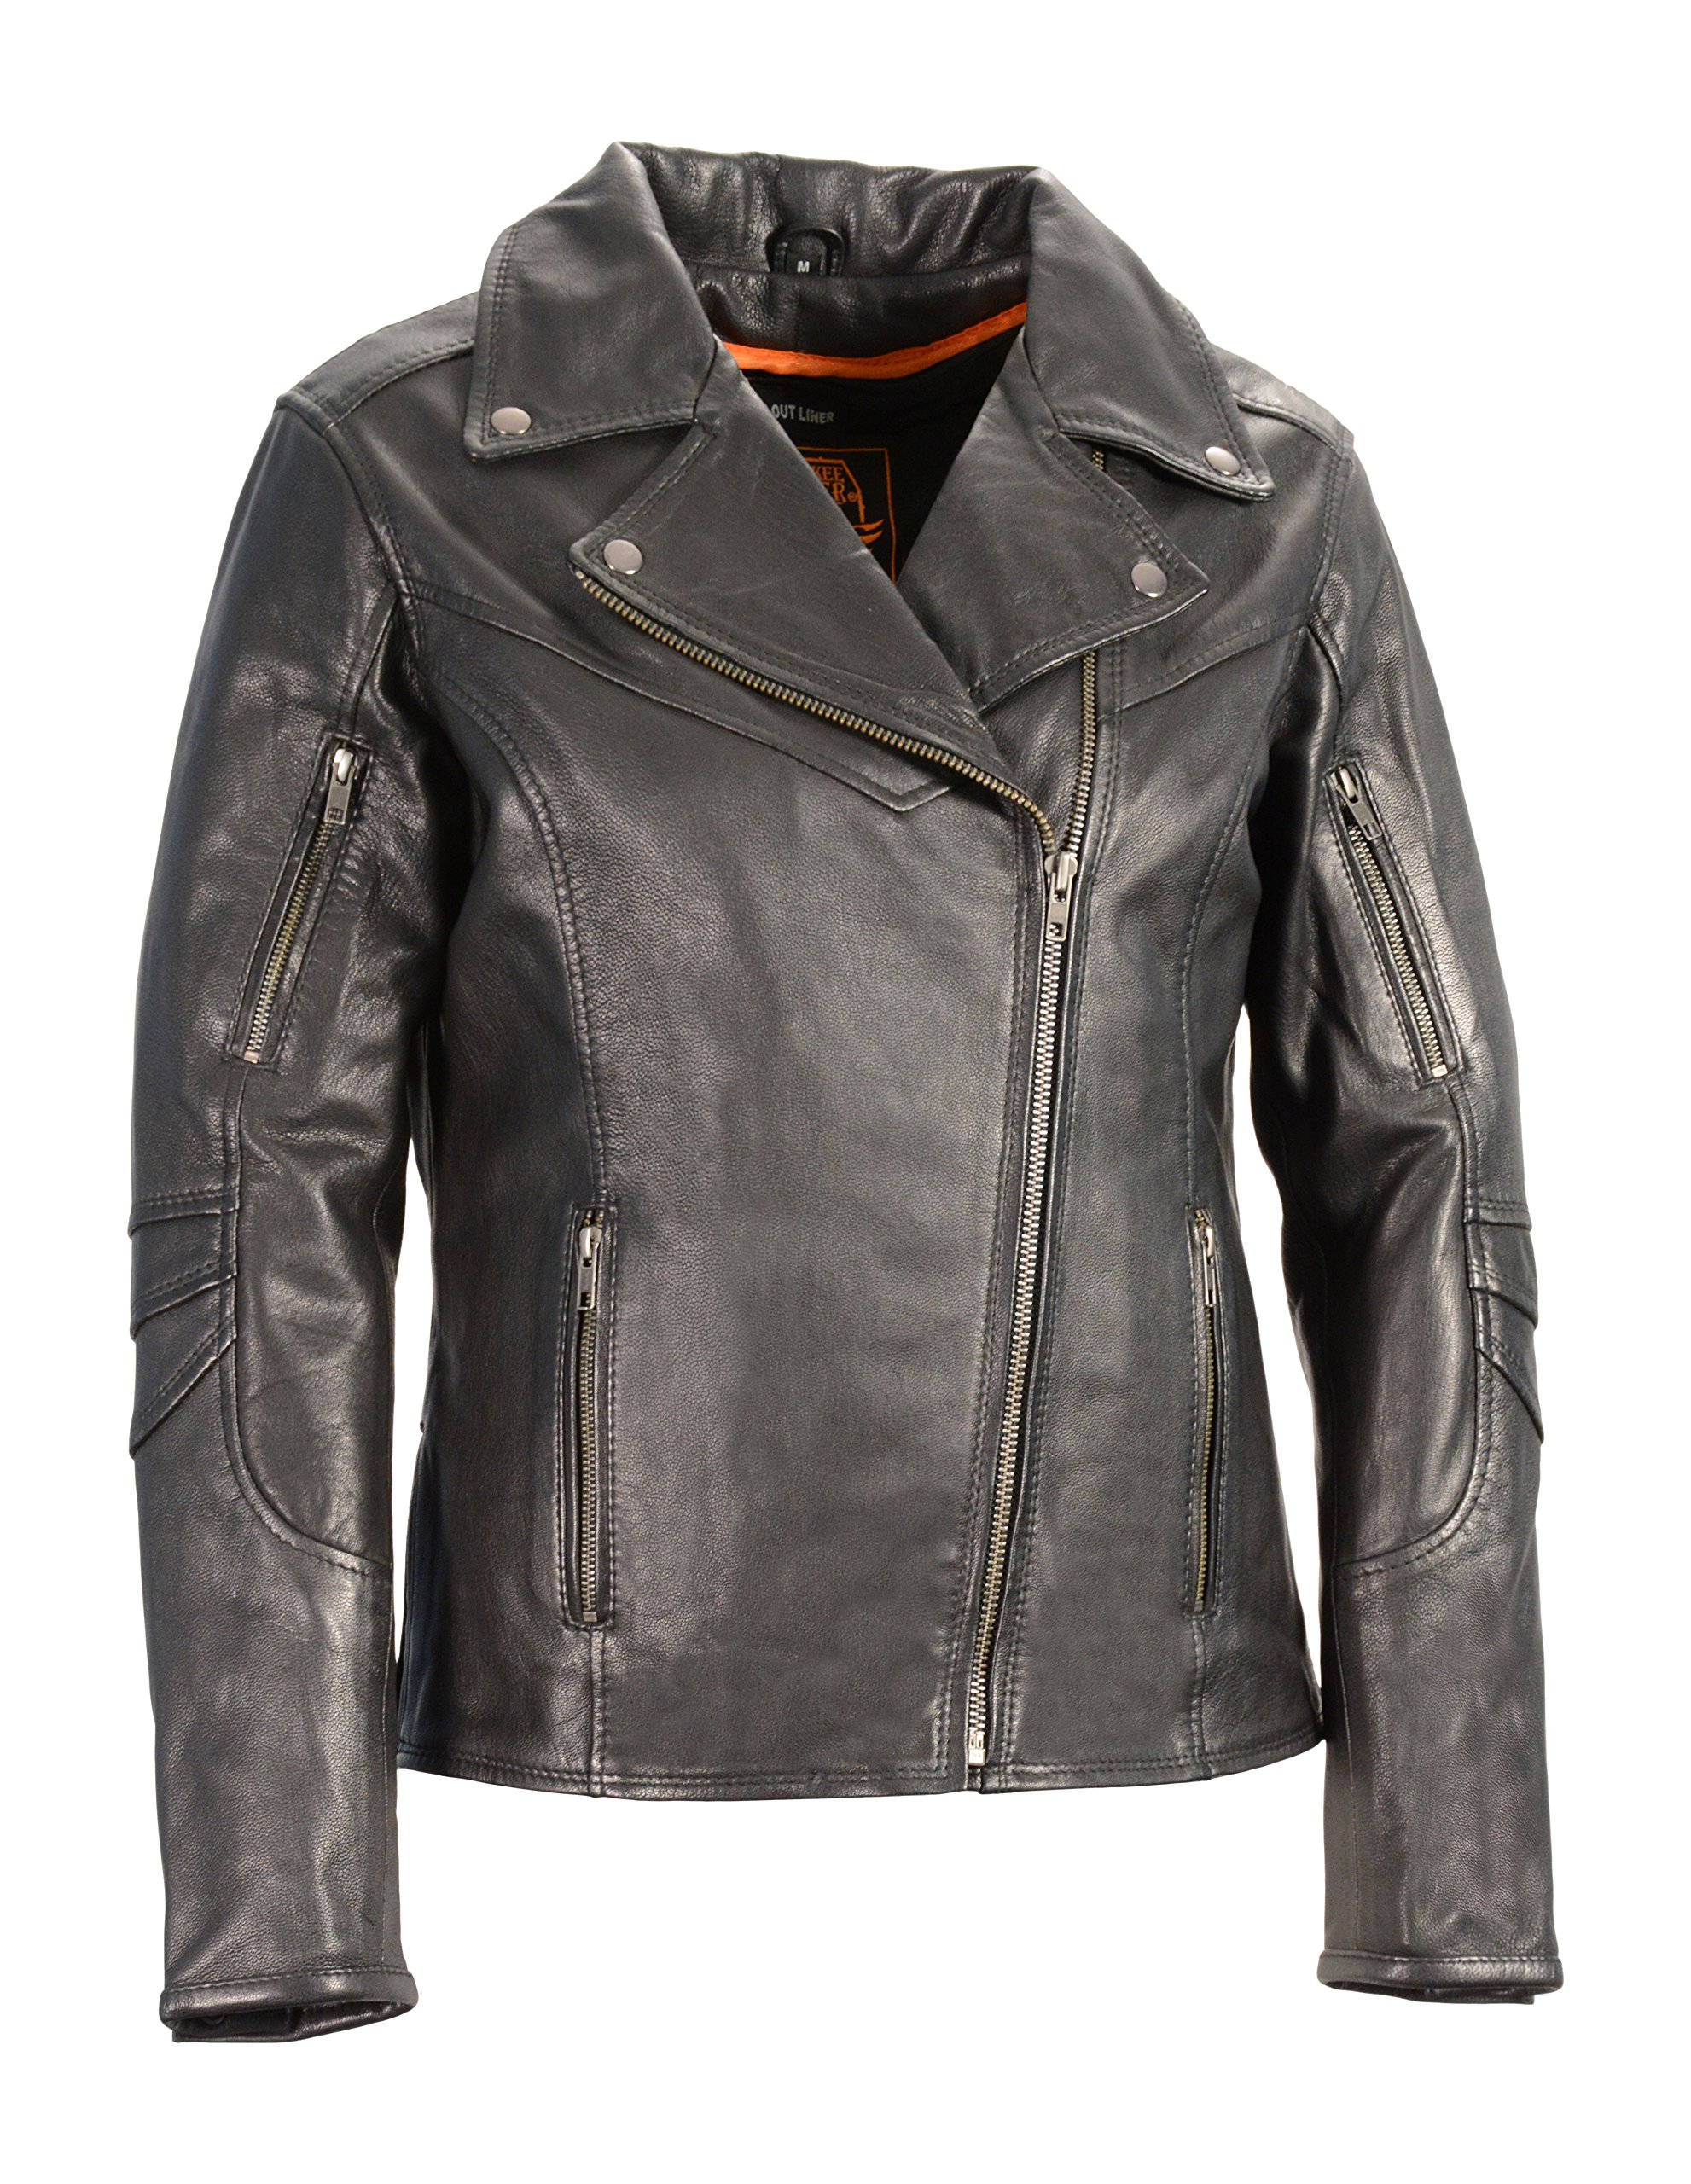 Milwaukee Leather Women's Vented Motorcycle Jacket (Black, XXX-Large)